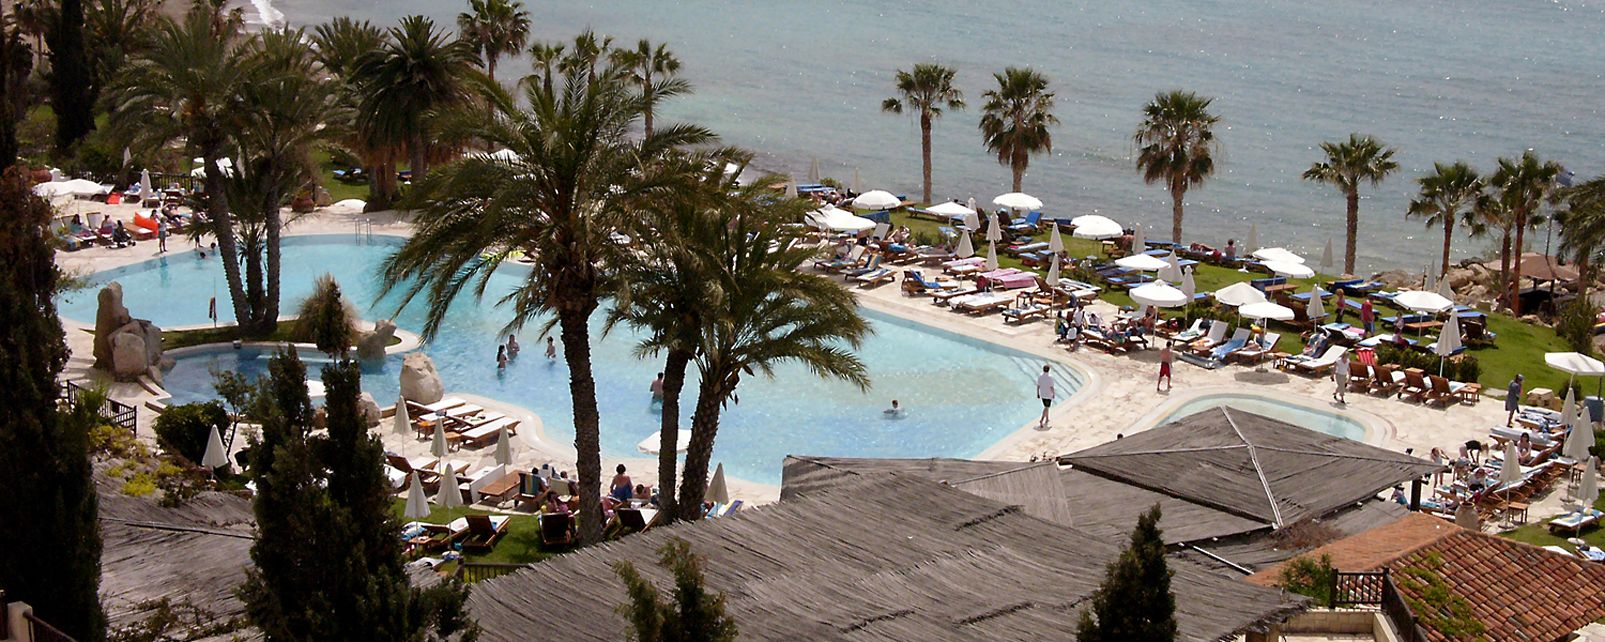 Hotel Coral Beach - Chypre